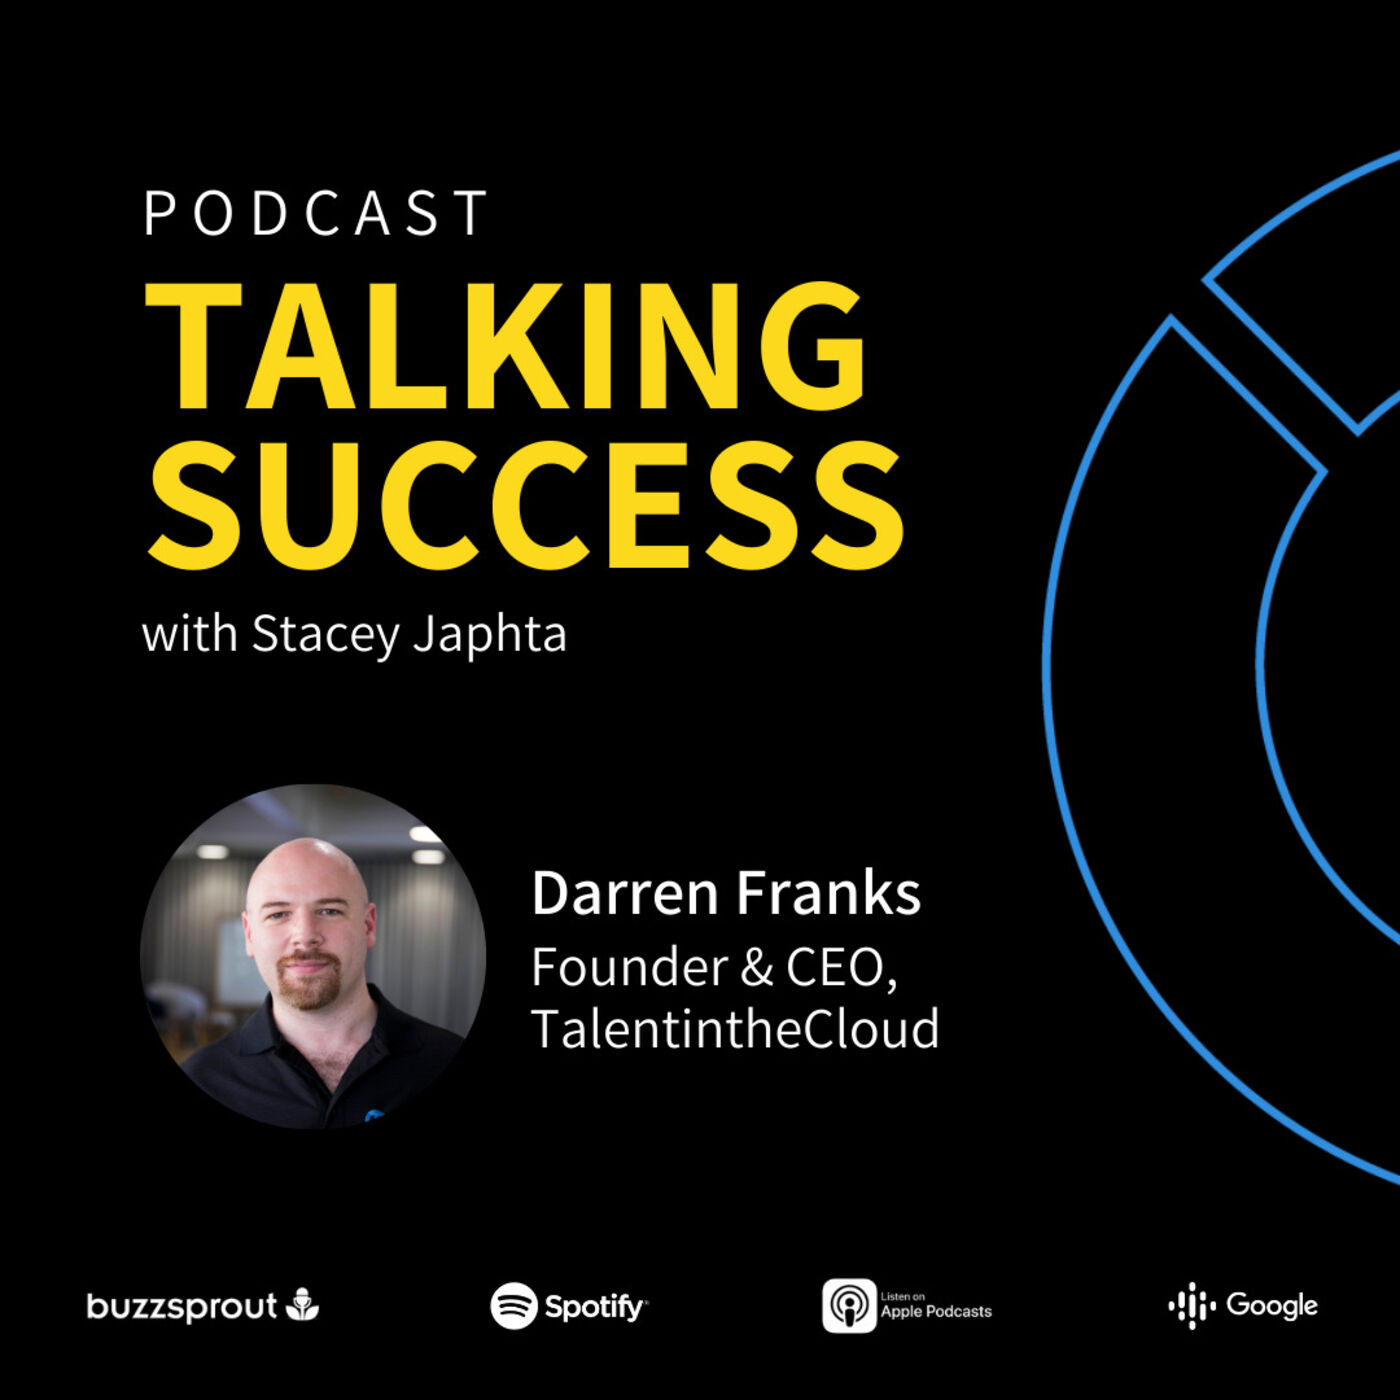 Darren Franks, Founder & CEO of TalentintheCloud - All things FinTech, Gender Diversity, & how to obtain inbound leads